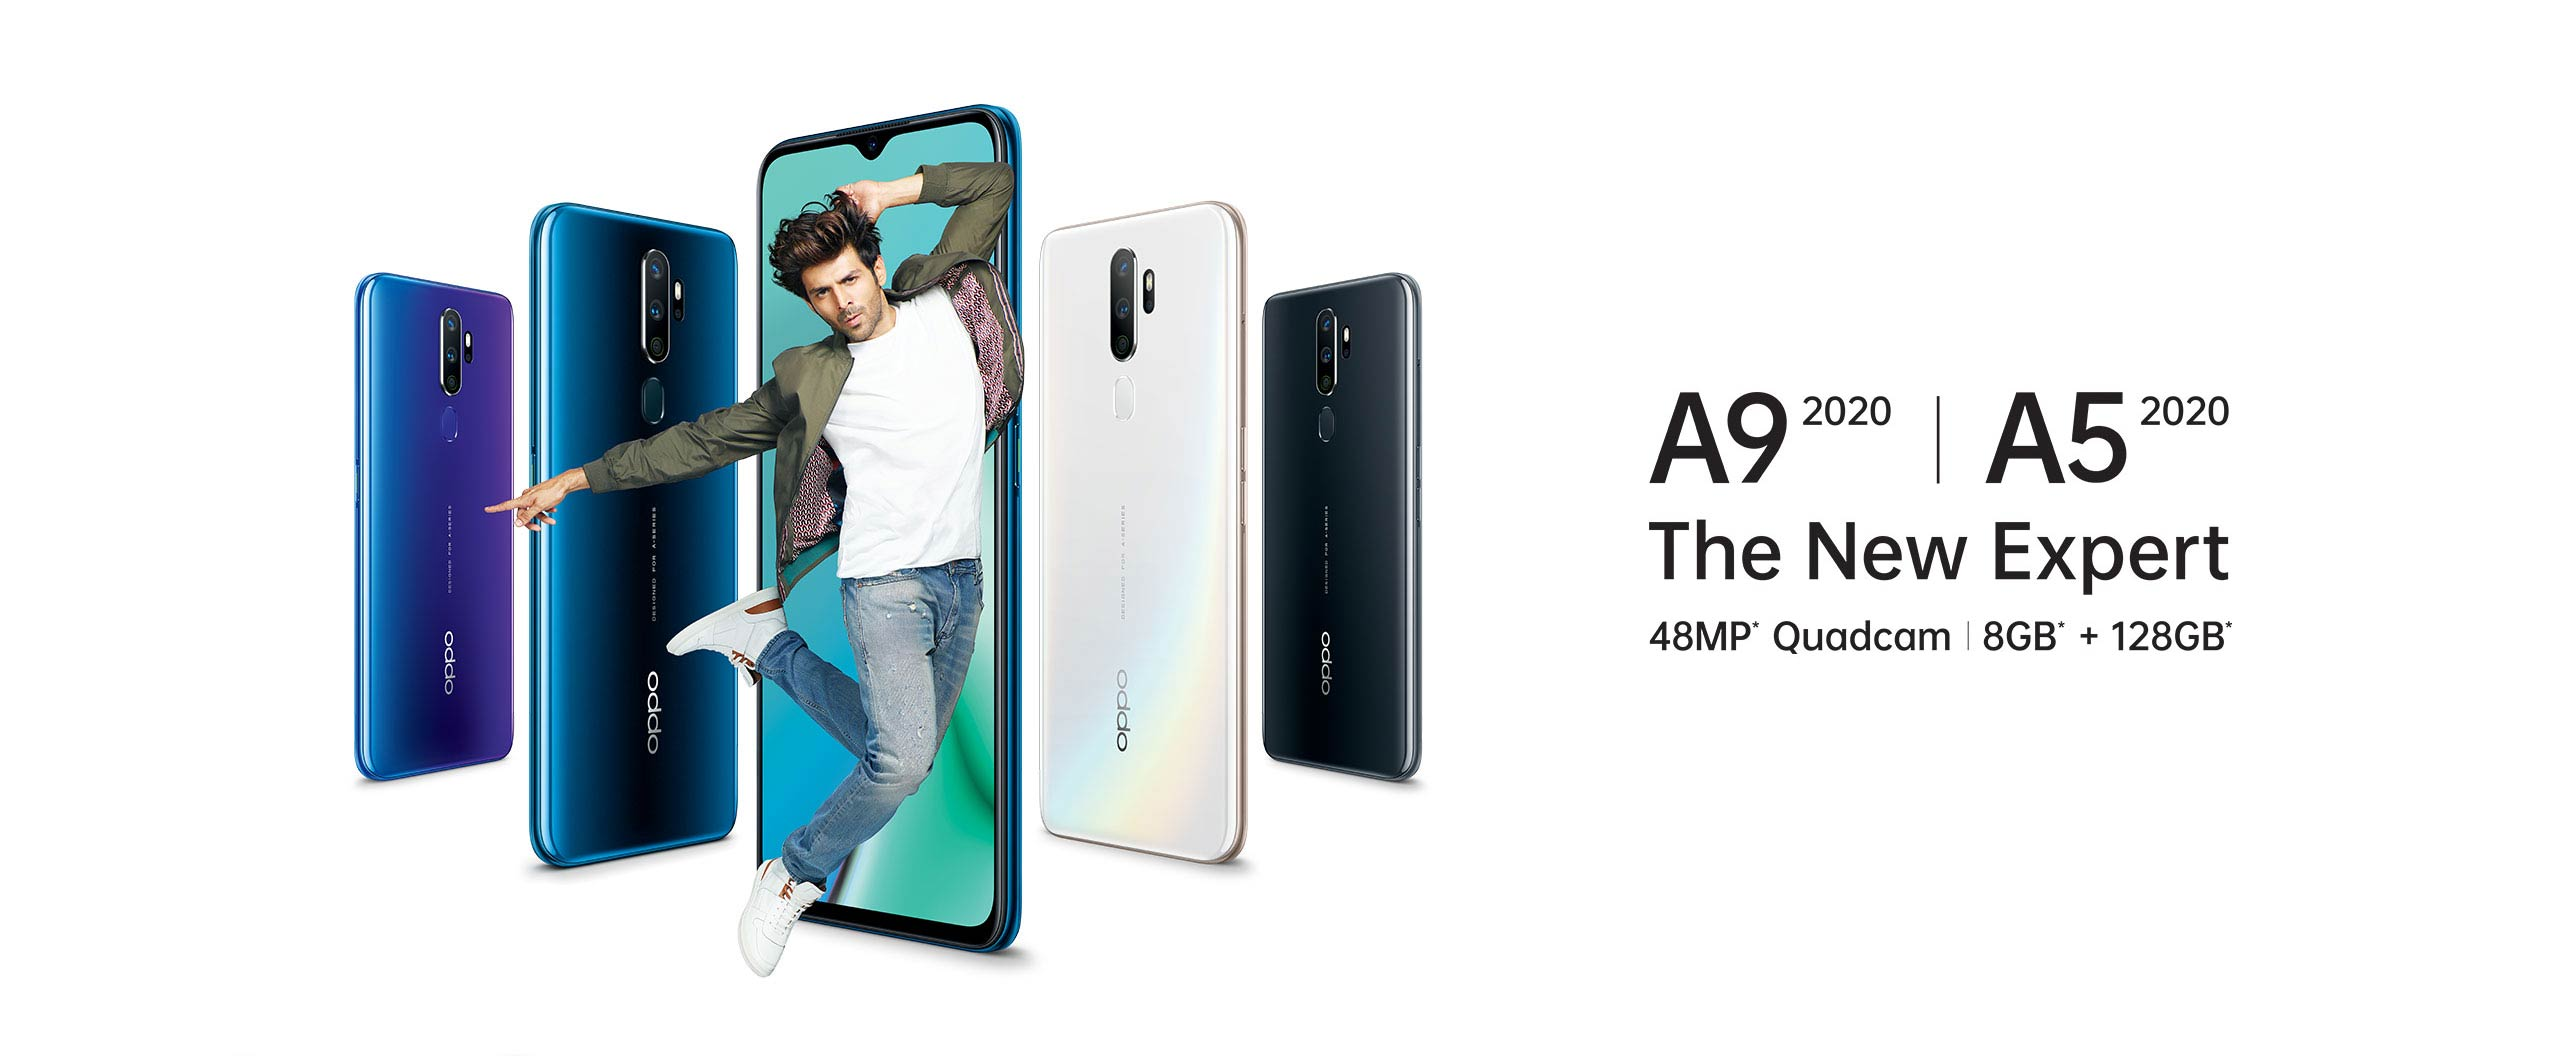 OPPO disrupts the mid-segment with A series 2020; Launches A9 and A5 with powerful Quad Camera